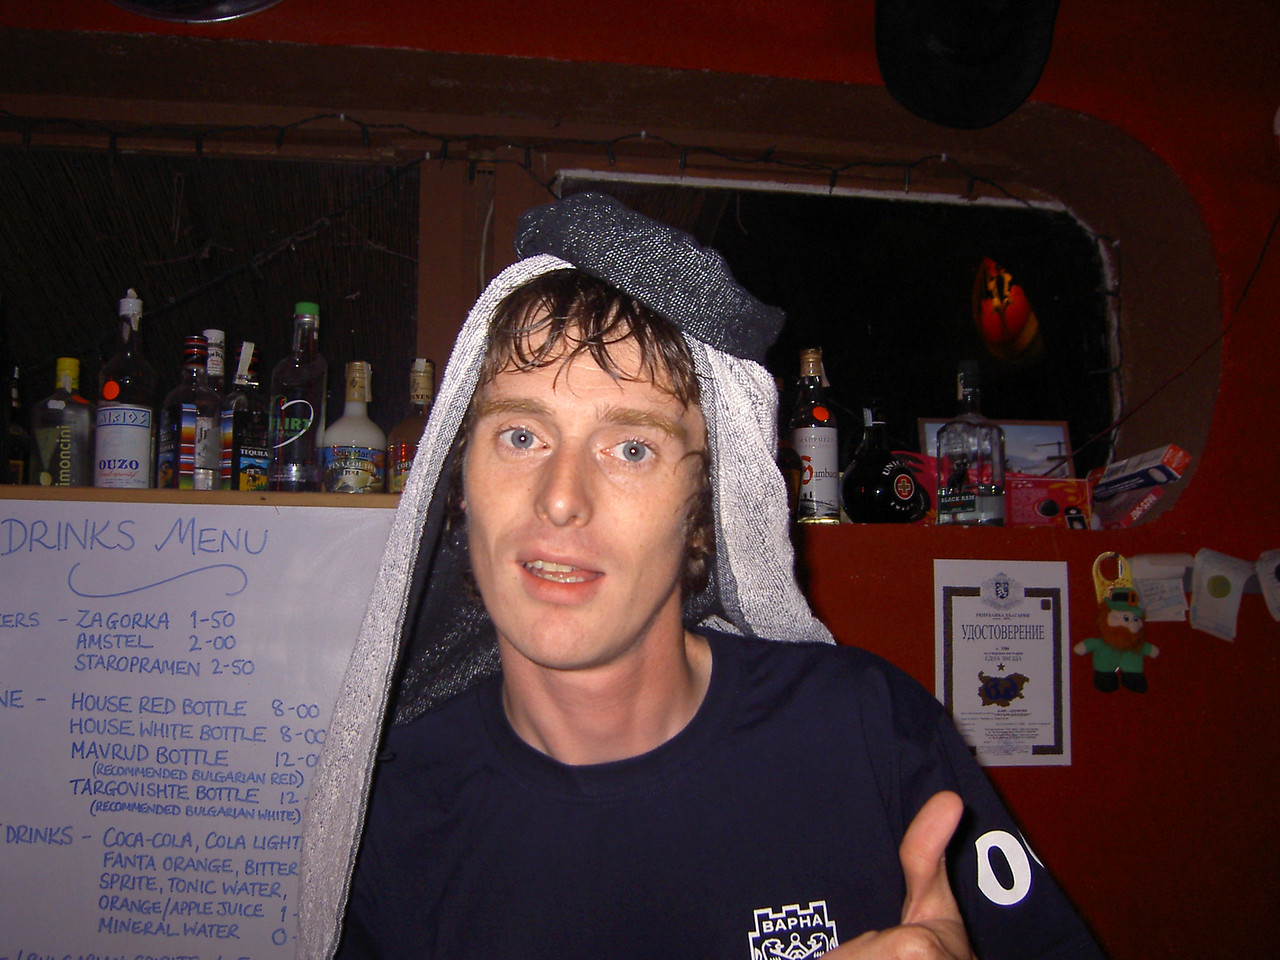 Hat night in the hostel bar: Terry